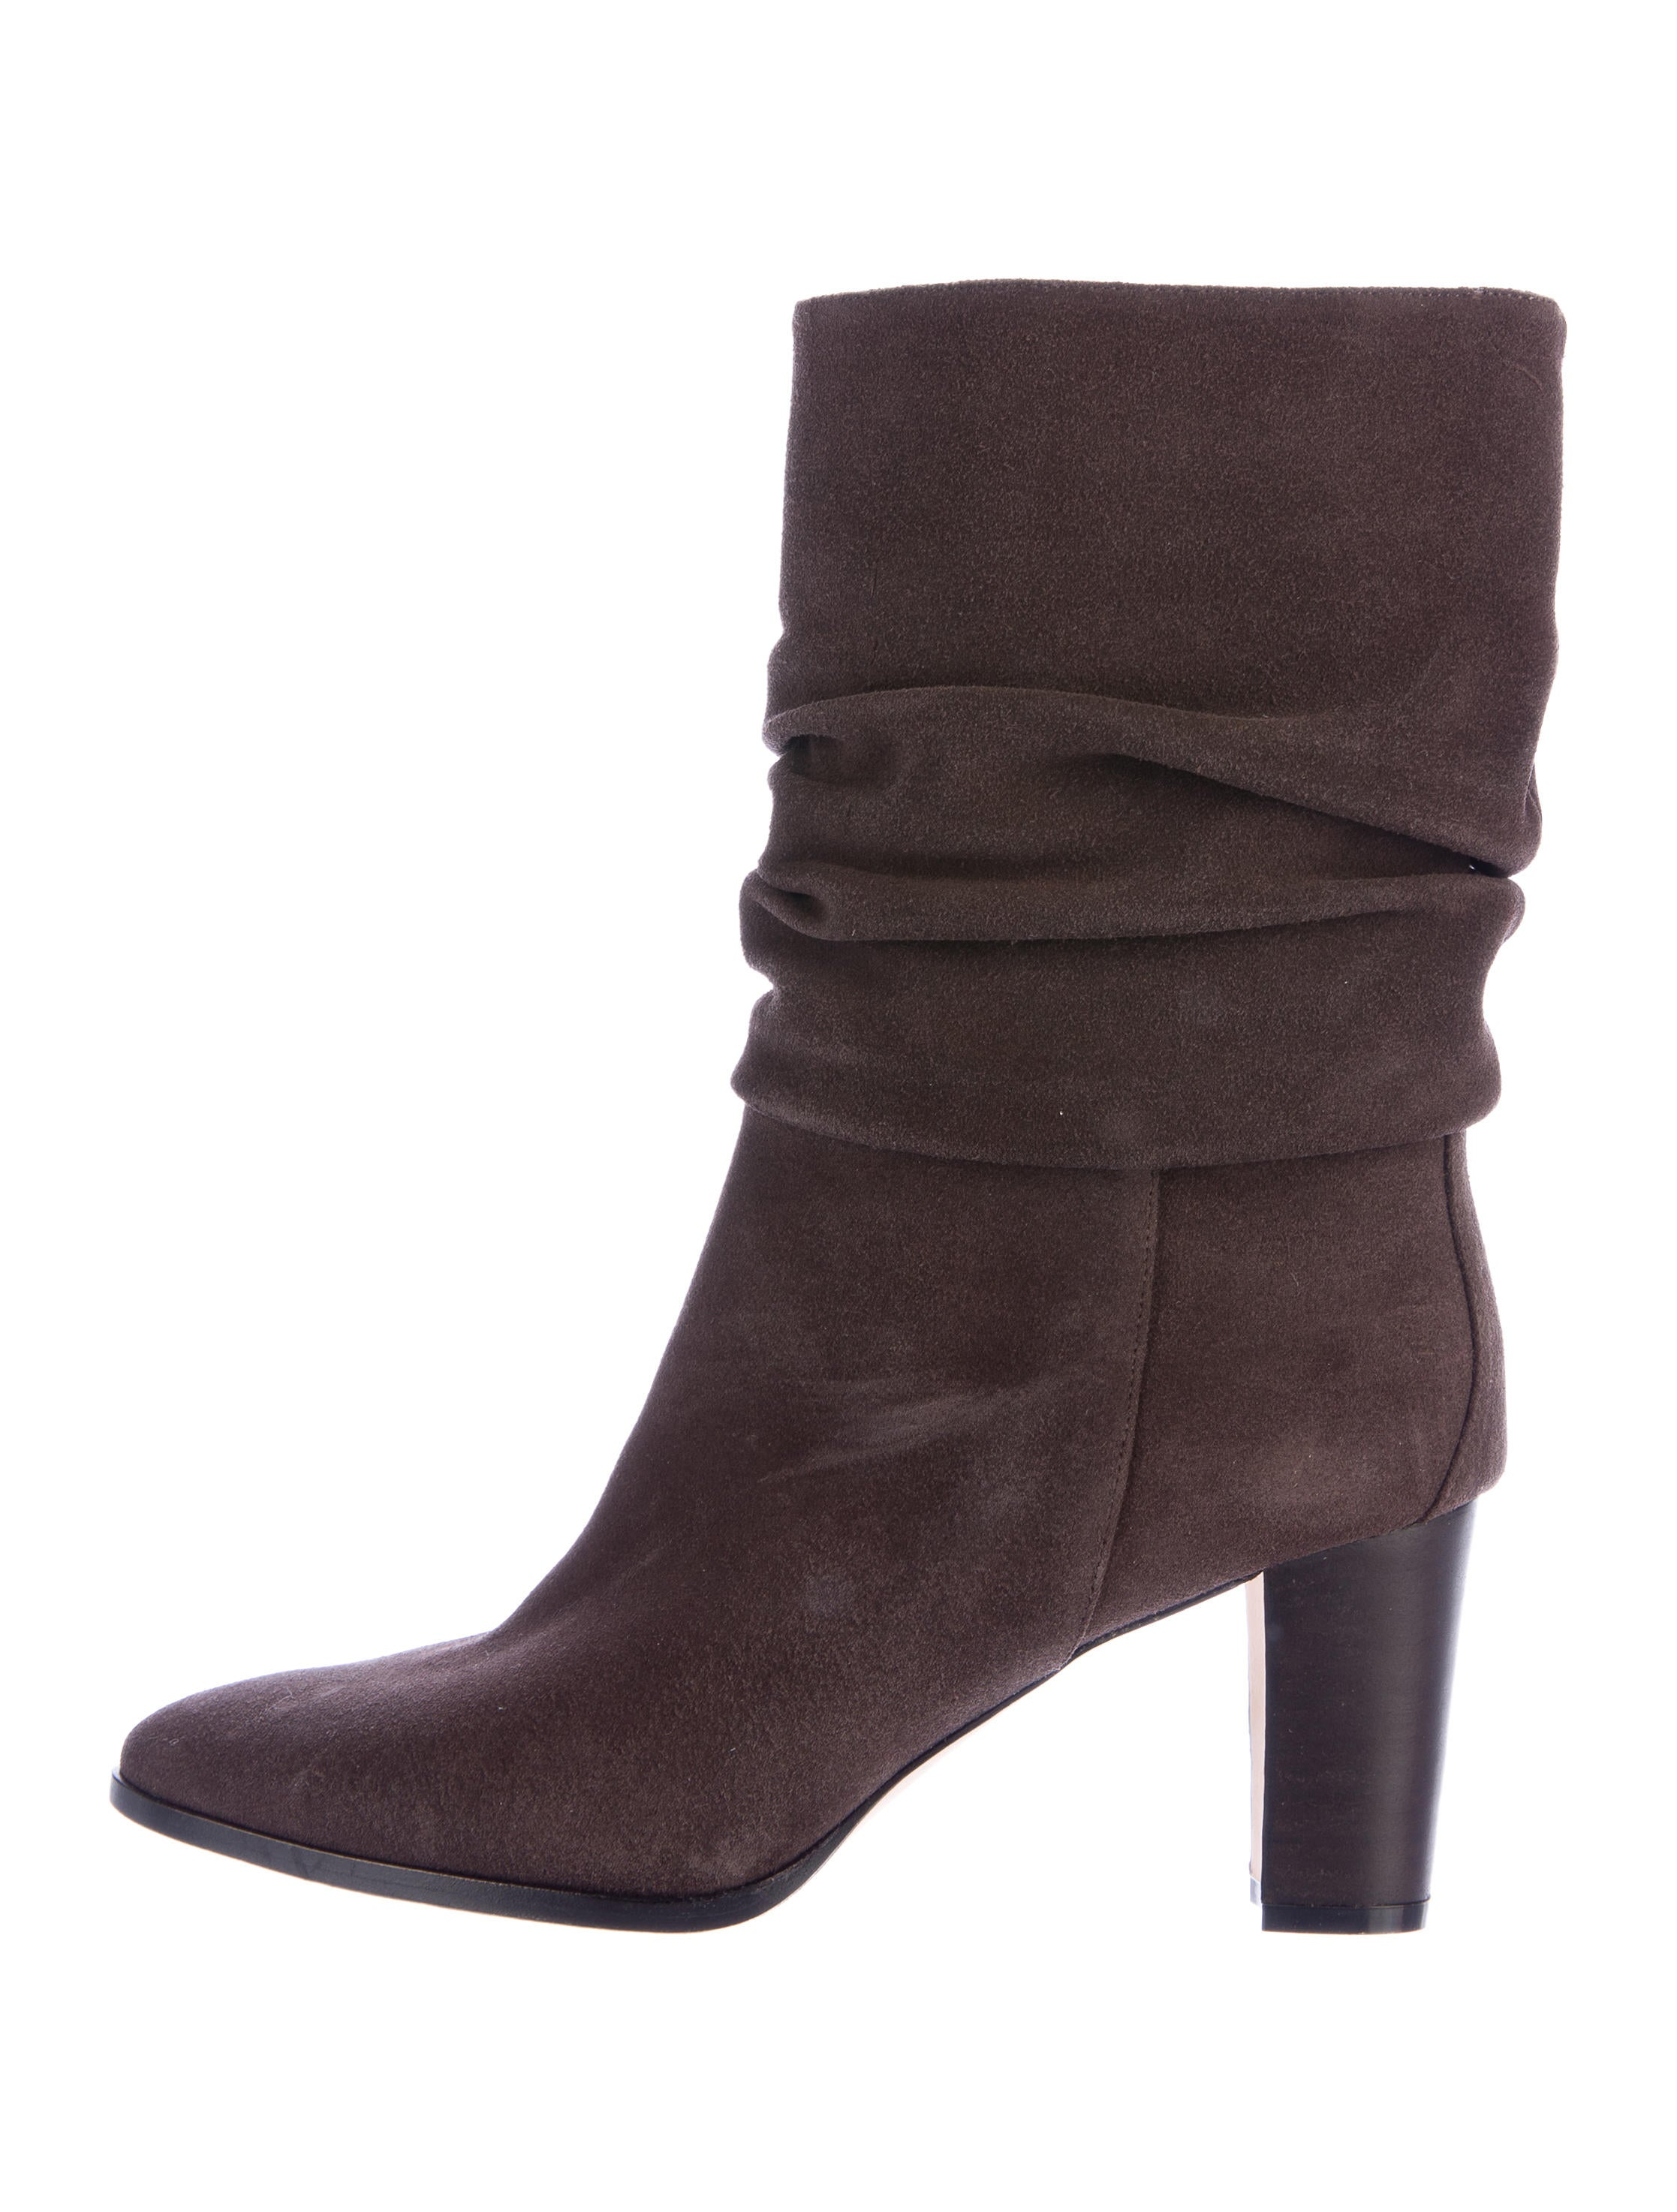 manolo blahnik ruched suede ankle boots shoes moo62920